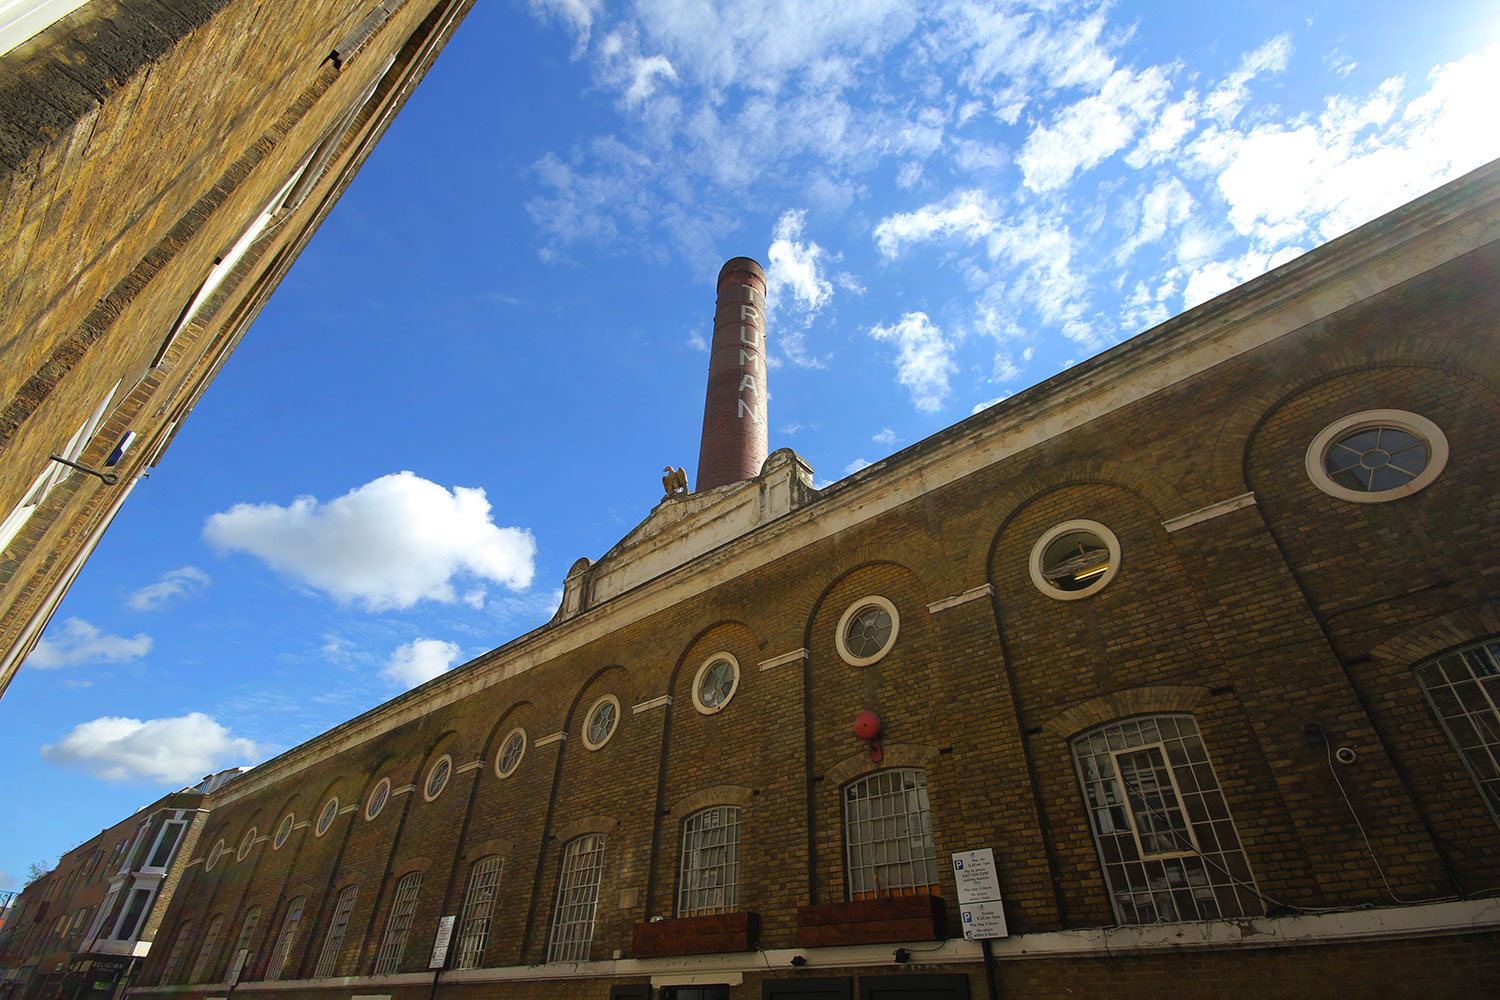 The Truman Brewery, Brick Lane, East London, Spitalfields